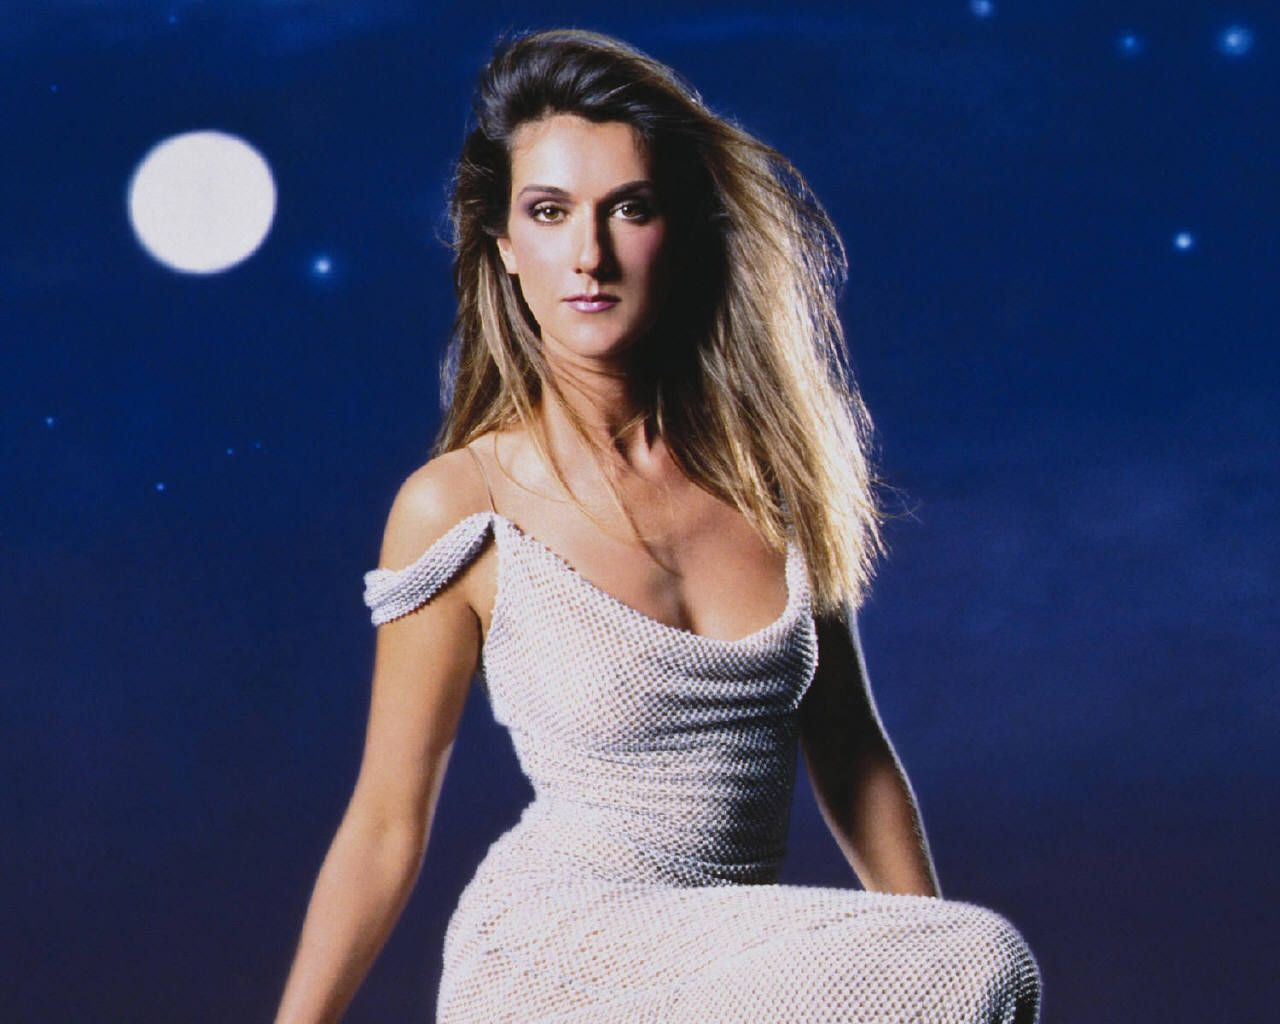 Get Your Favorite Celebs Facts Celine Dion Celine Dion Videos Celine